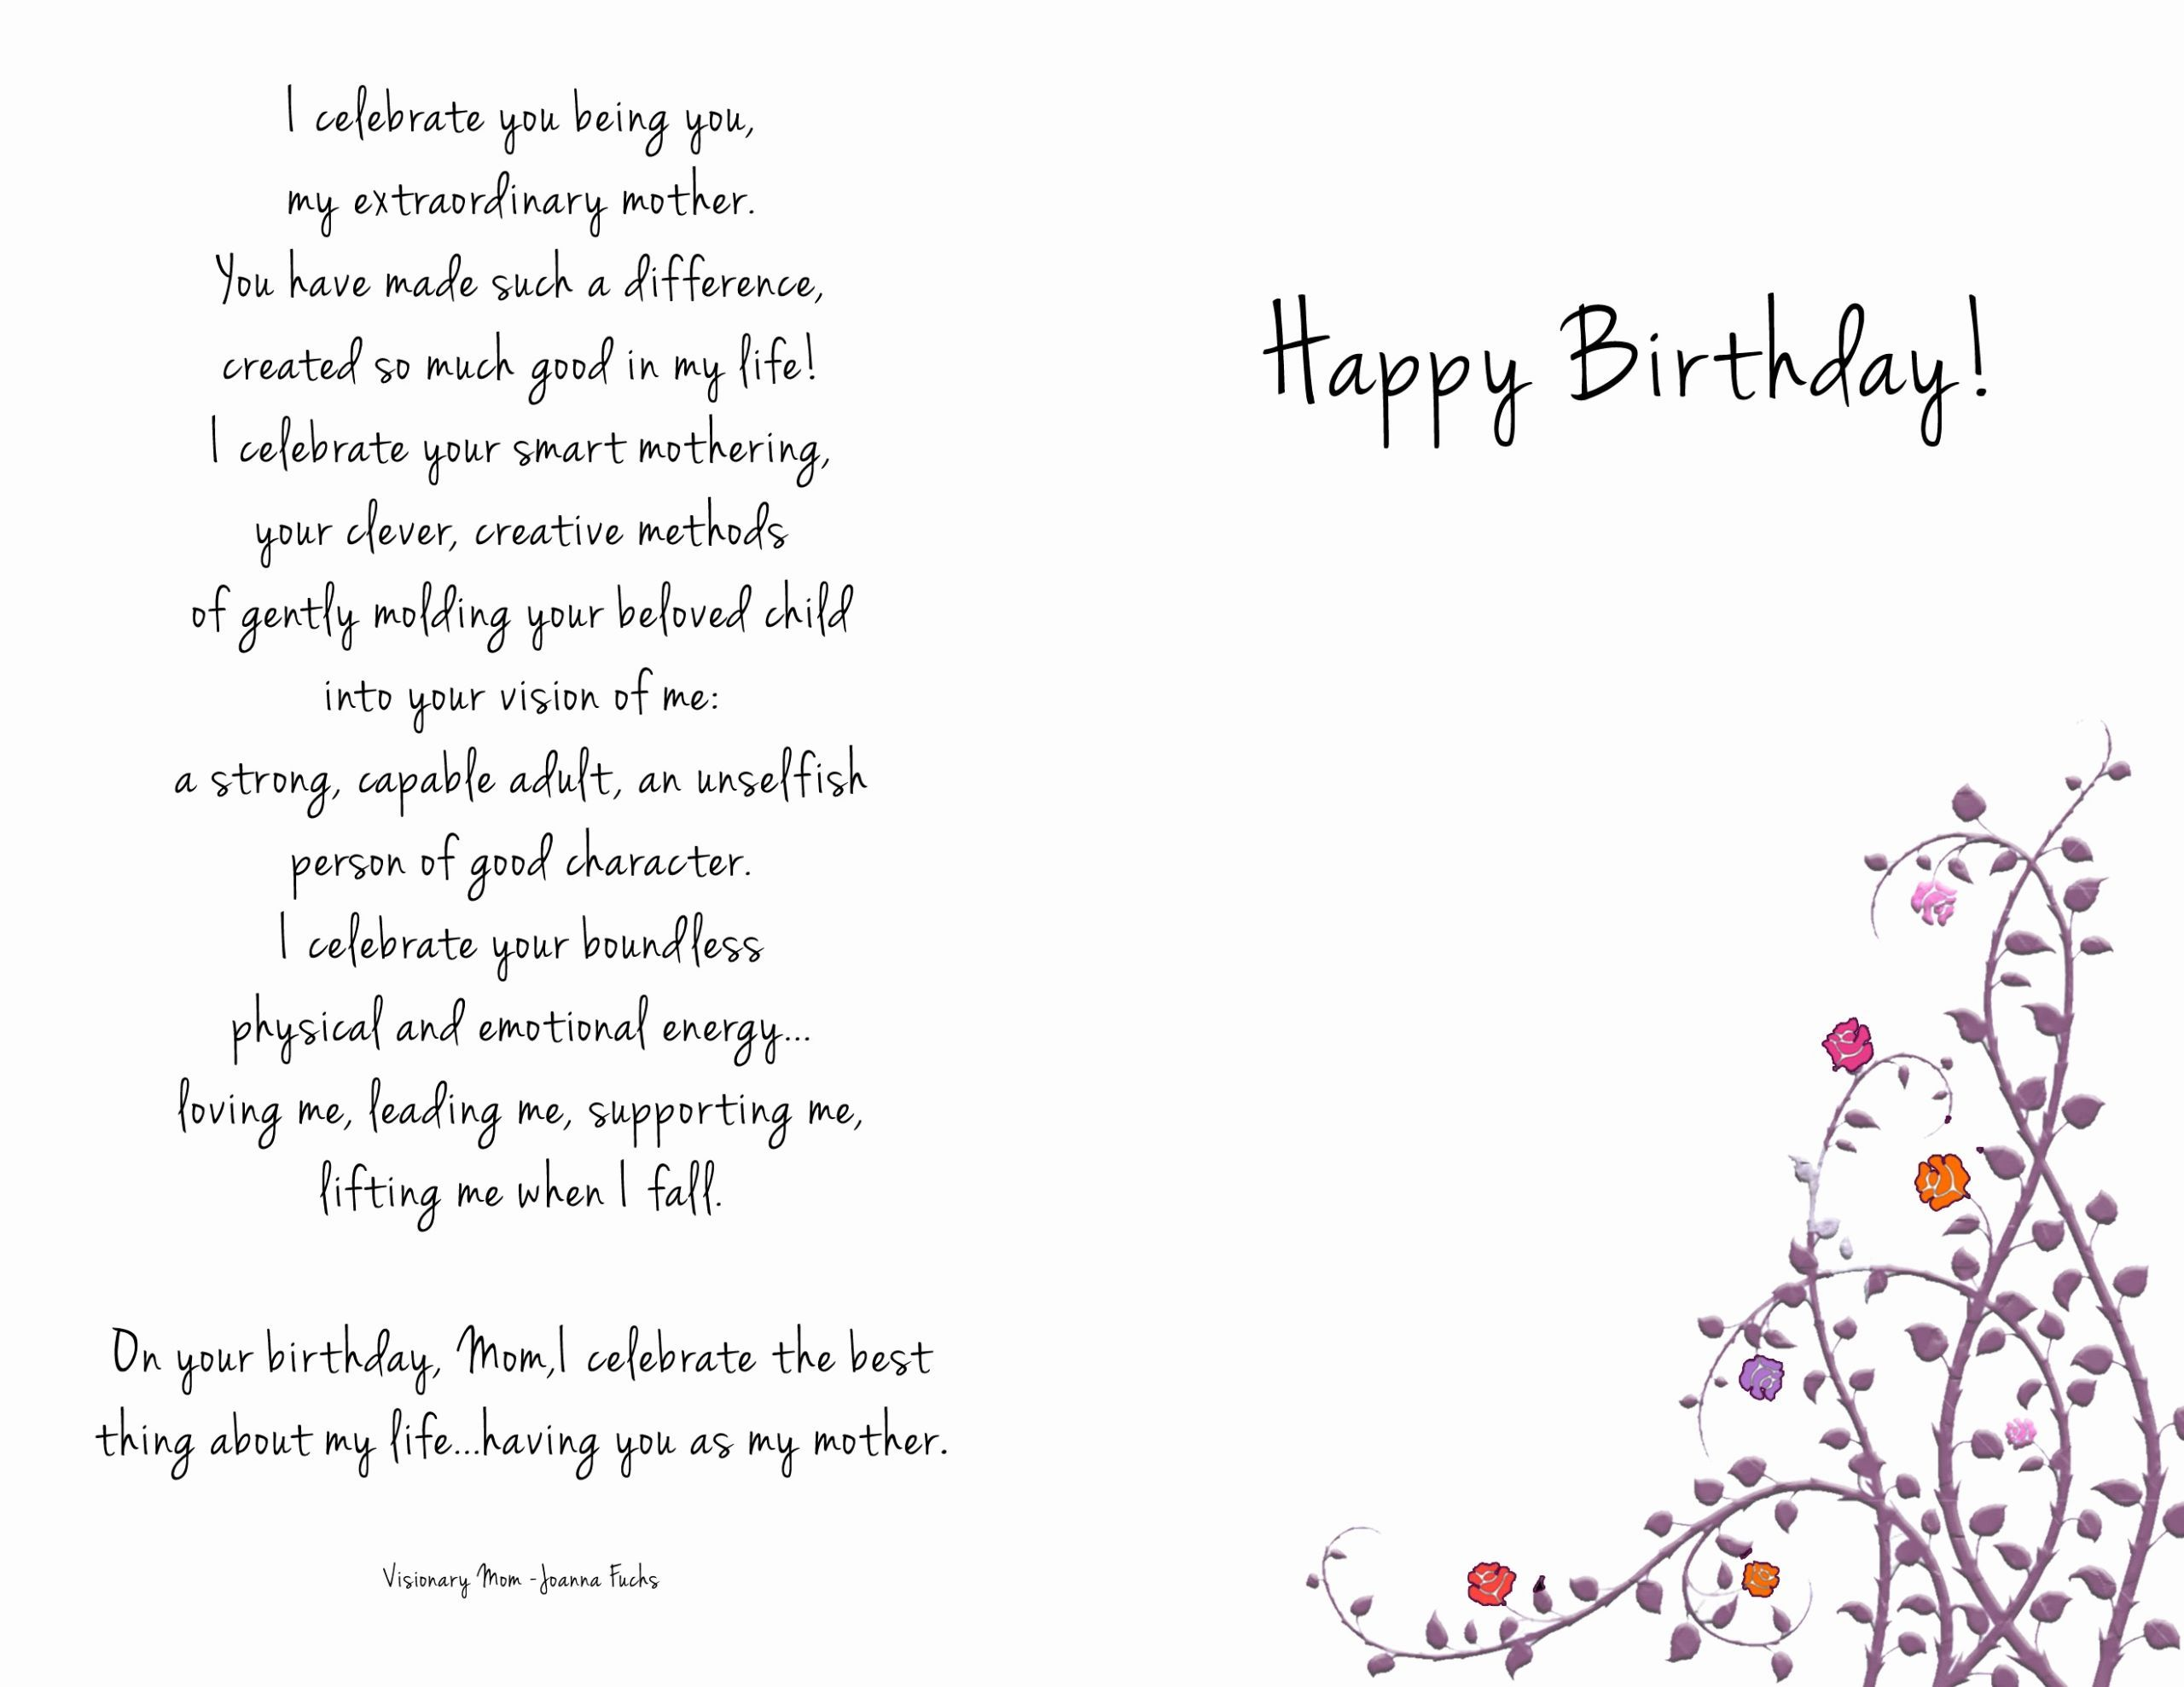 7 Card Messages For 7th Birthday di 7